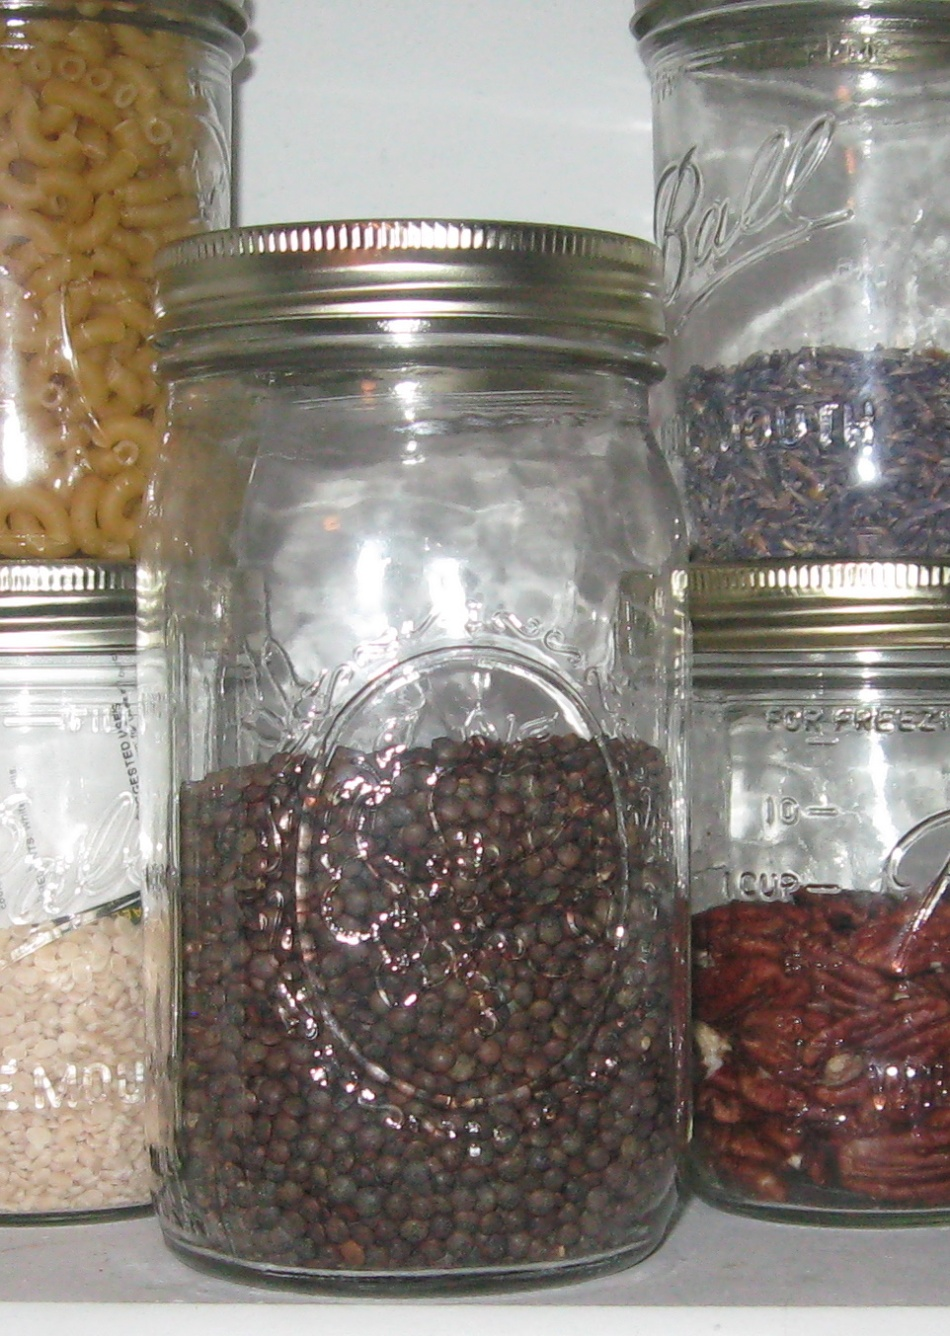 lentils in Mason/Ball jar on pantry shelf.